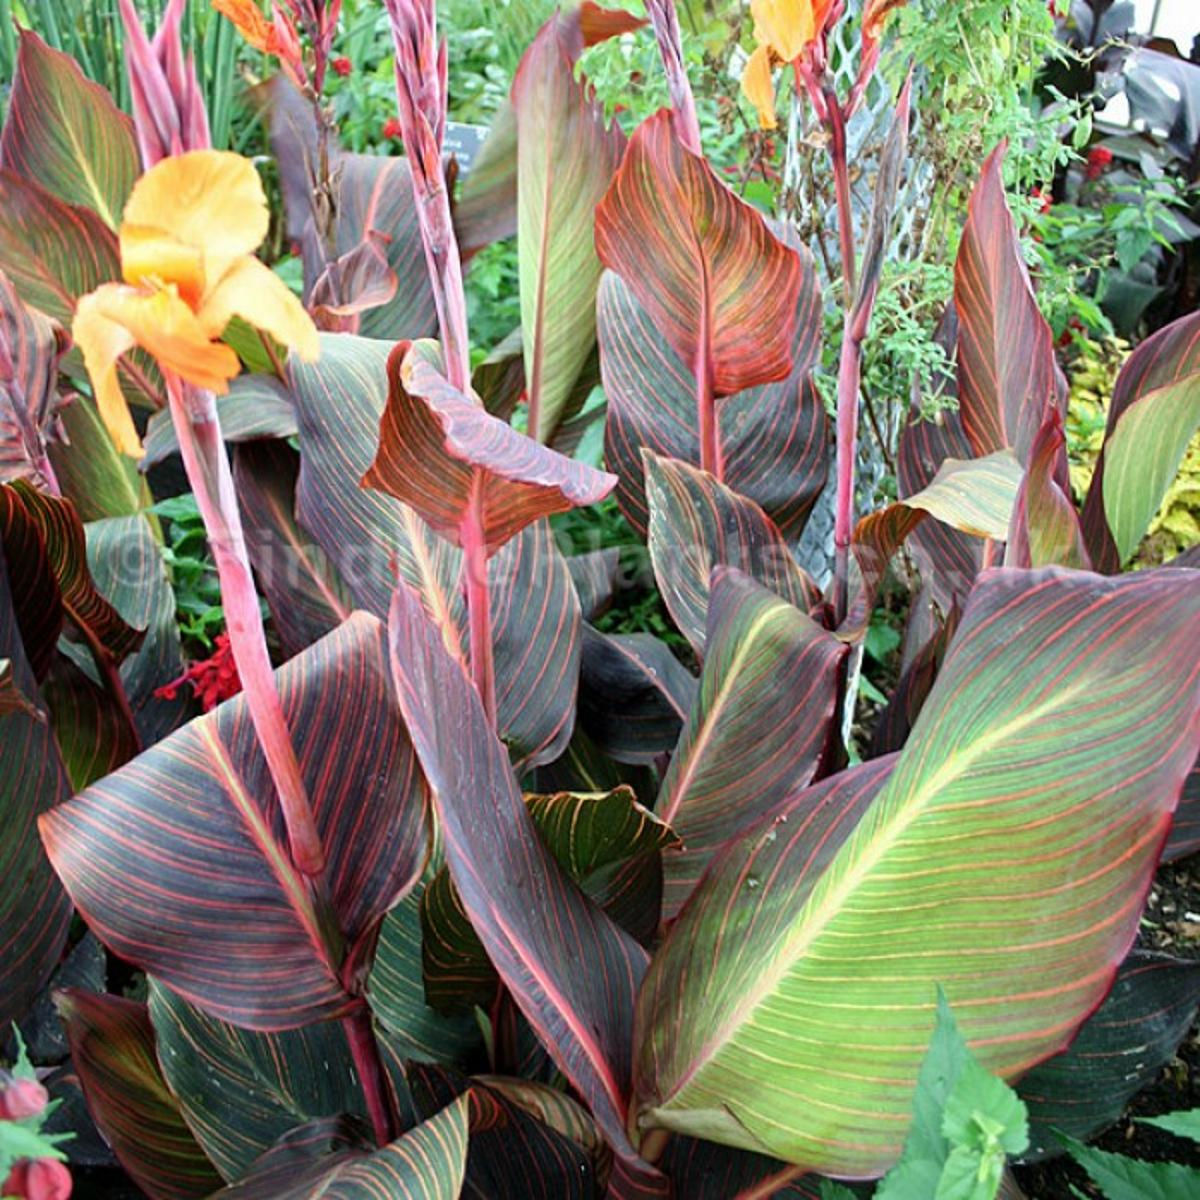 Herbal Healer: What is canna? | Healthy Living | nwitimes com